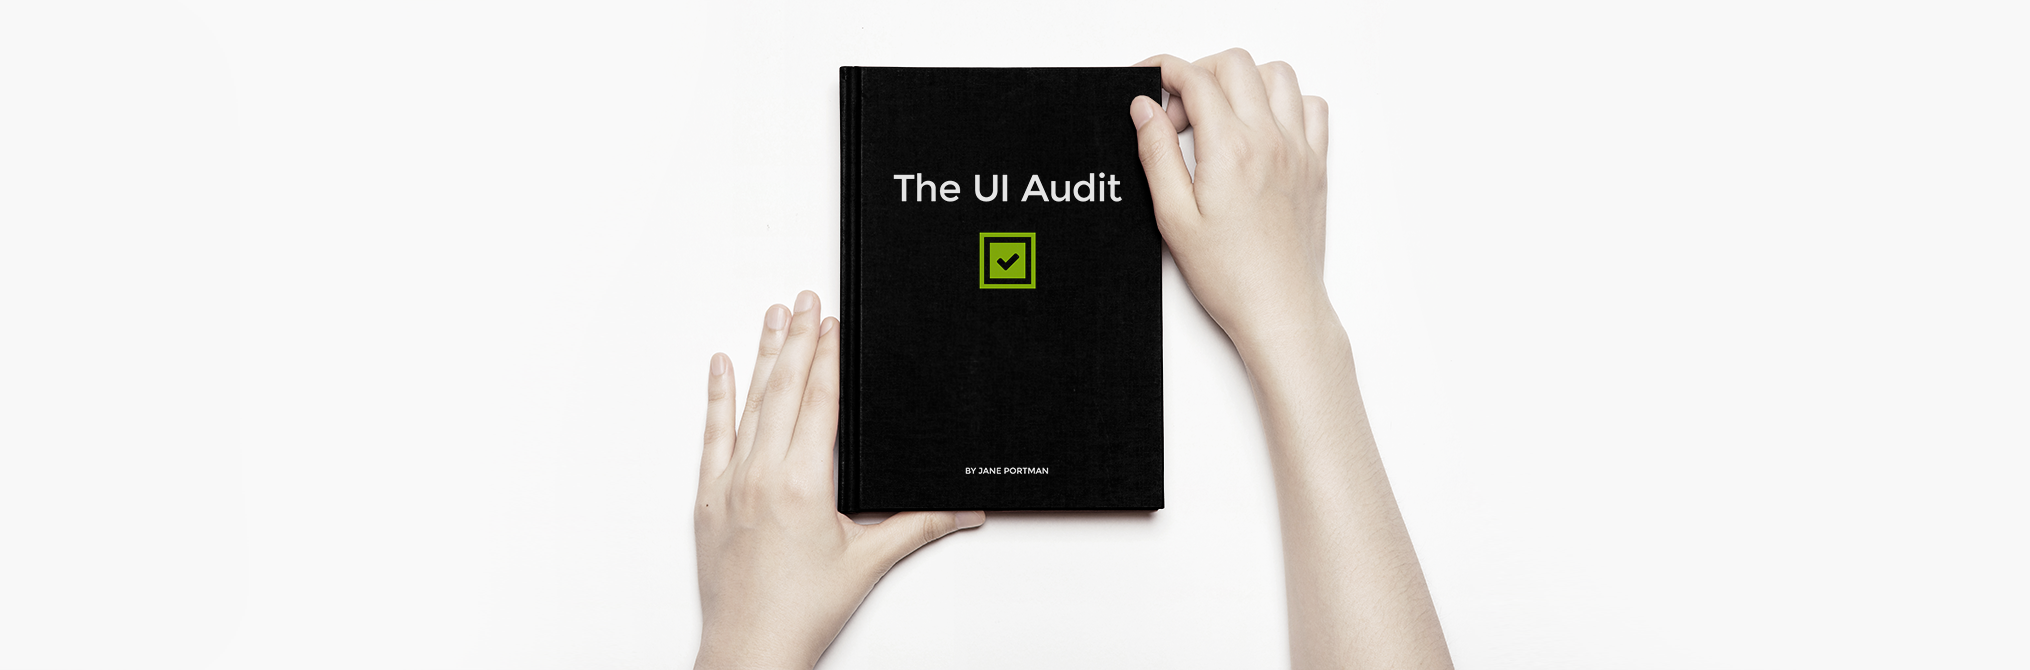 The UI Audit Book